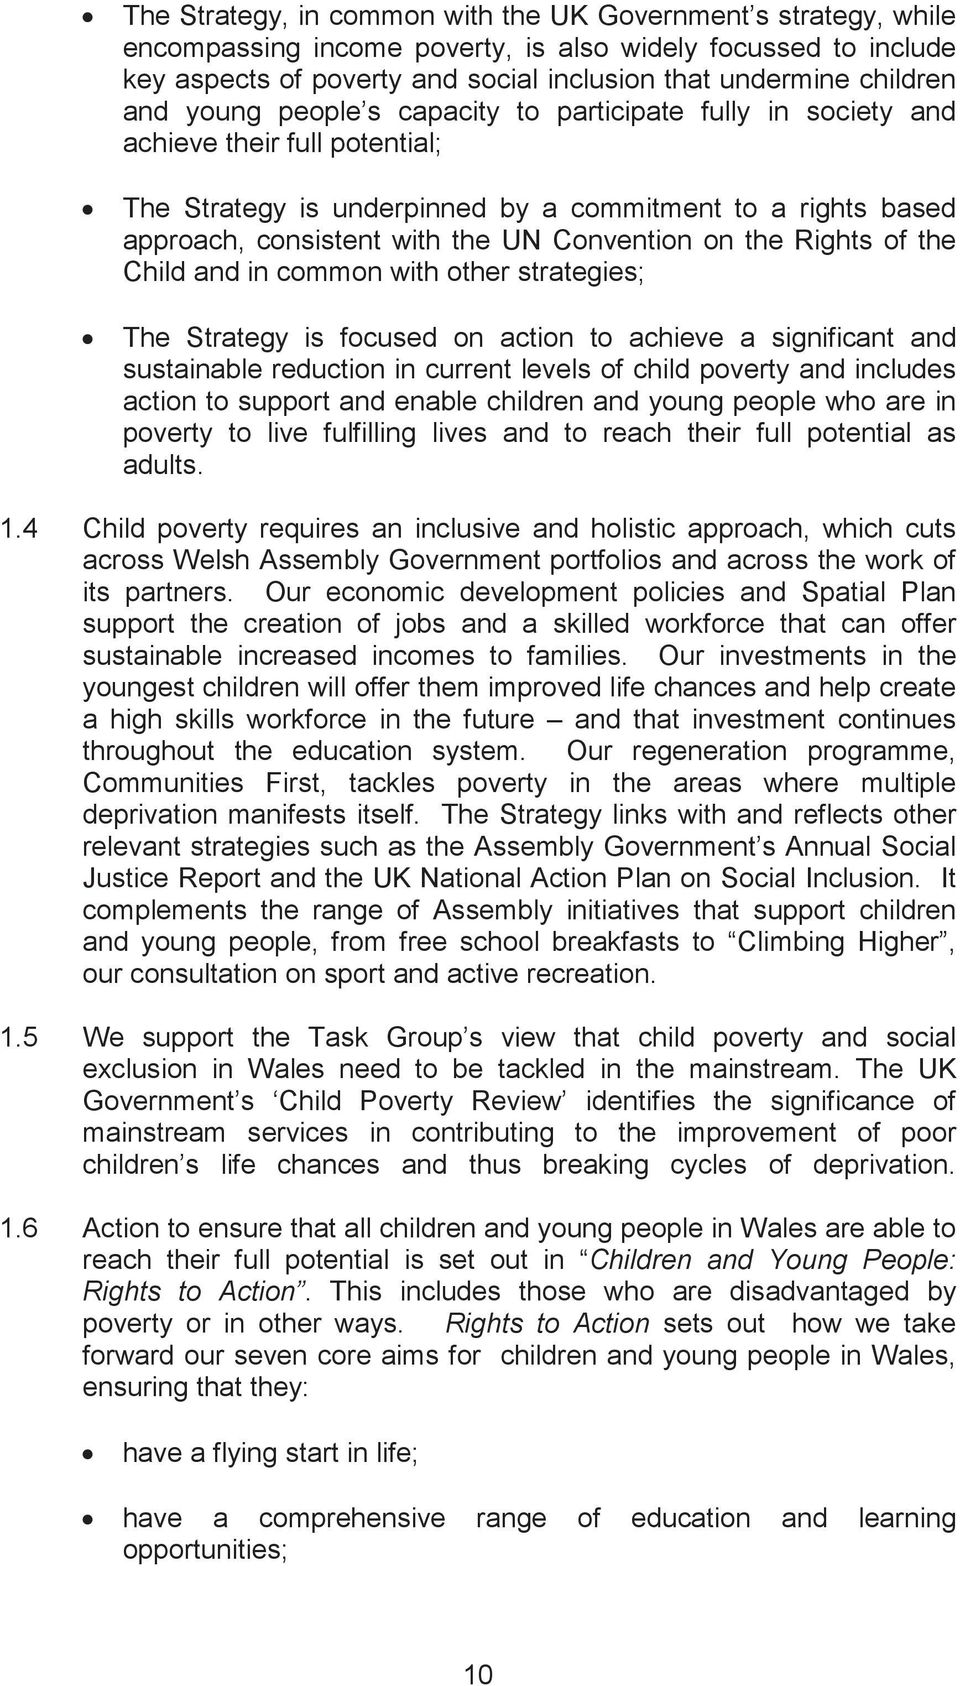 on the Rights of the Child and in common with other strategies; The Strategy is focused on action to achieve a significant and sustainable reduction in current levels of child poverty and includes